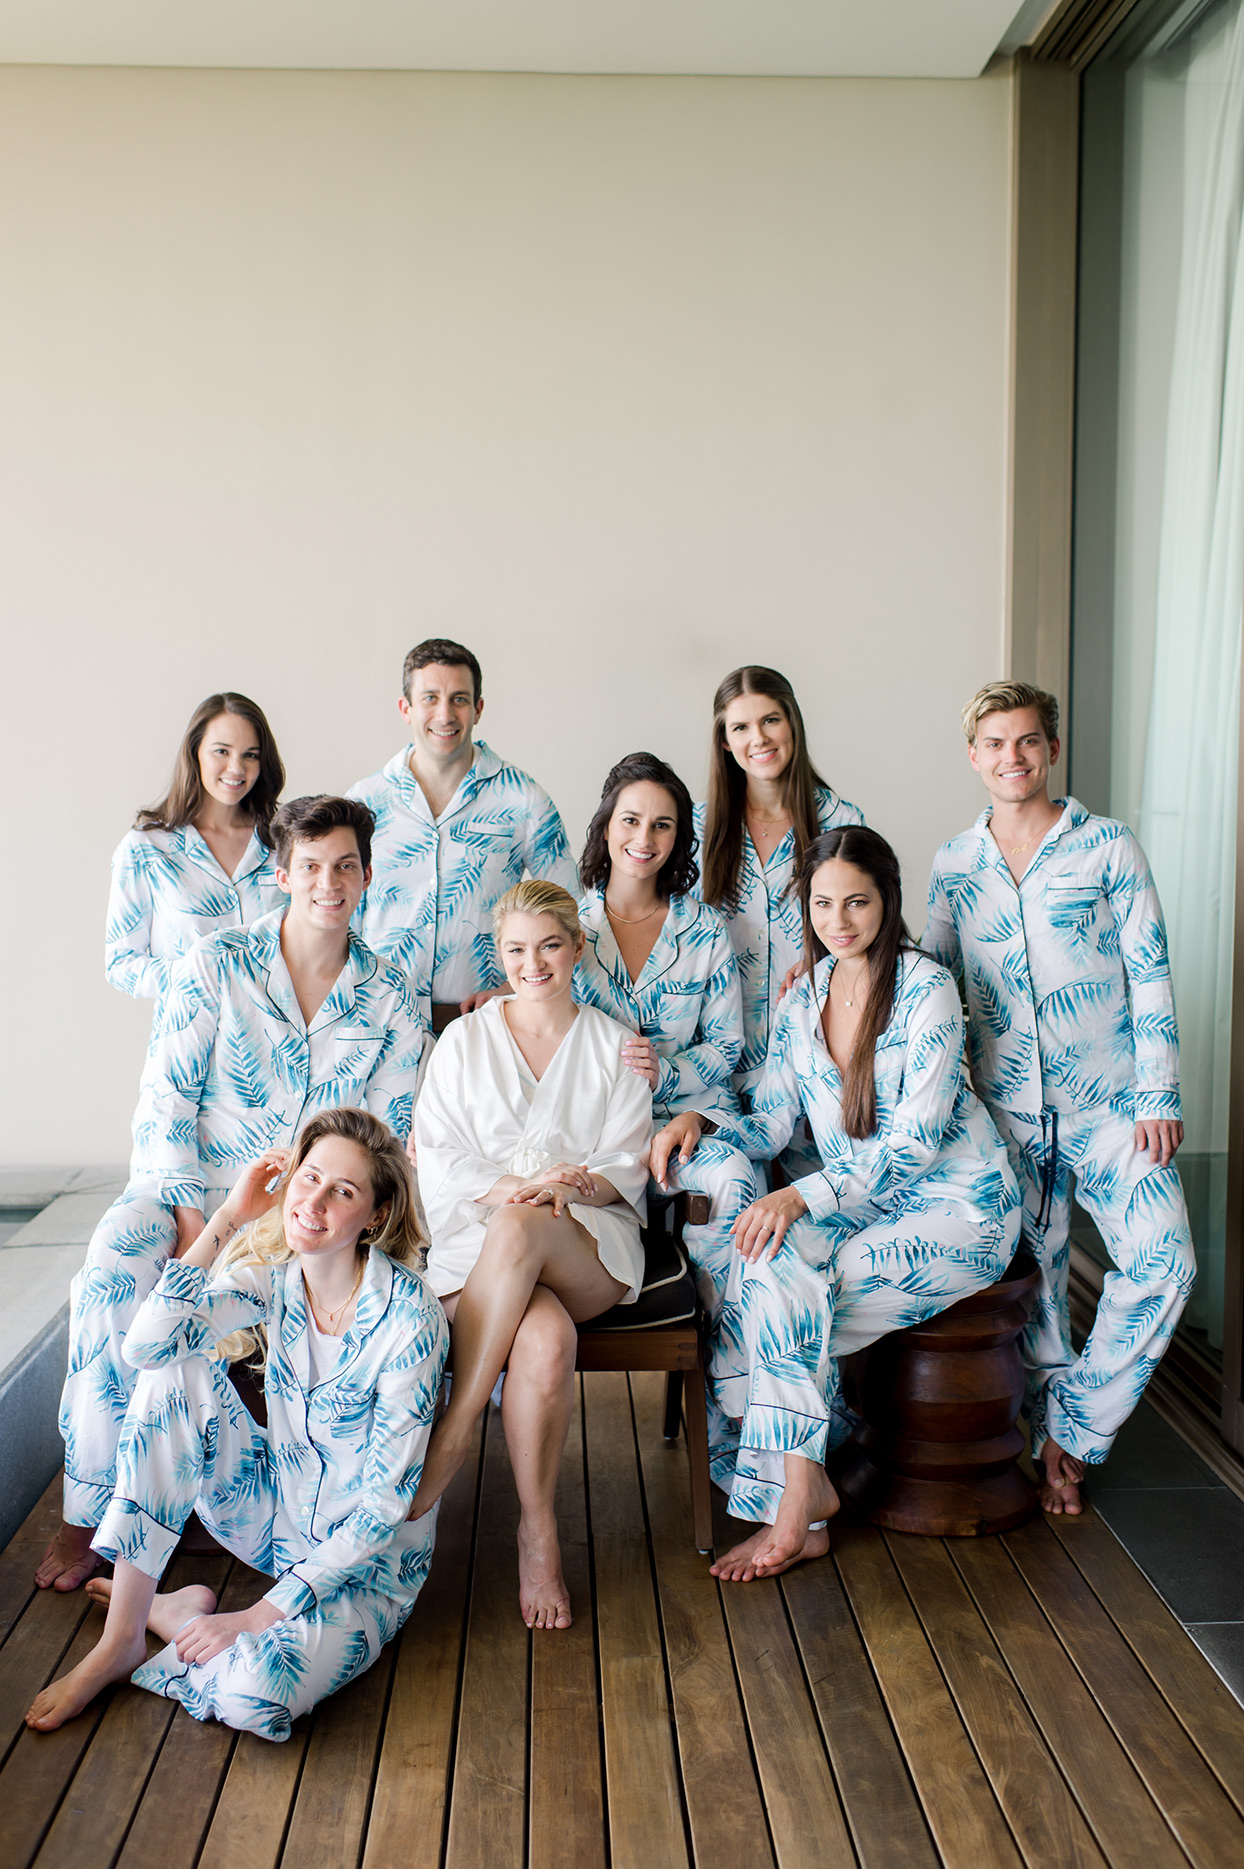 katie nick wedding bride and party in matching pajamas getting ready